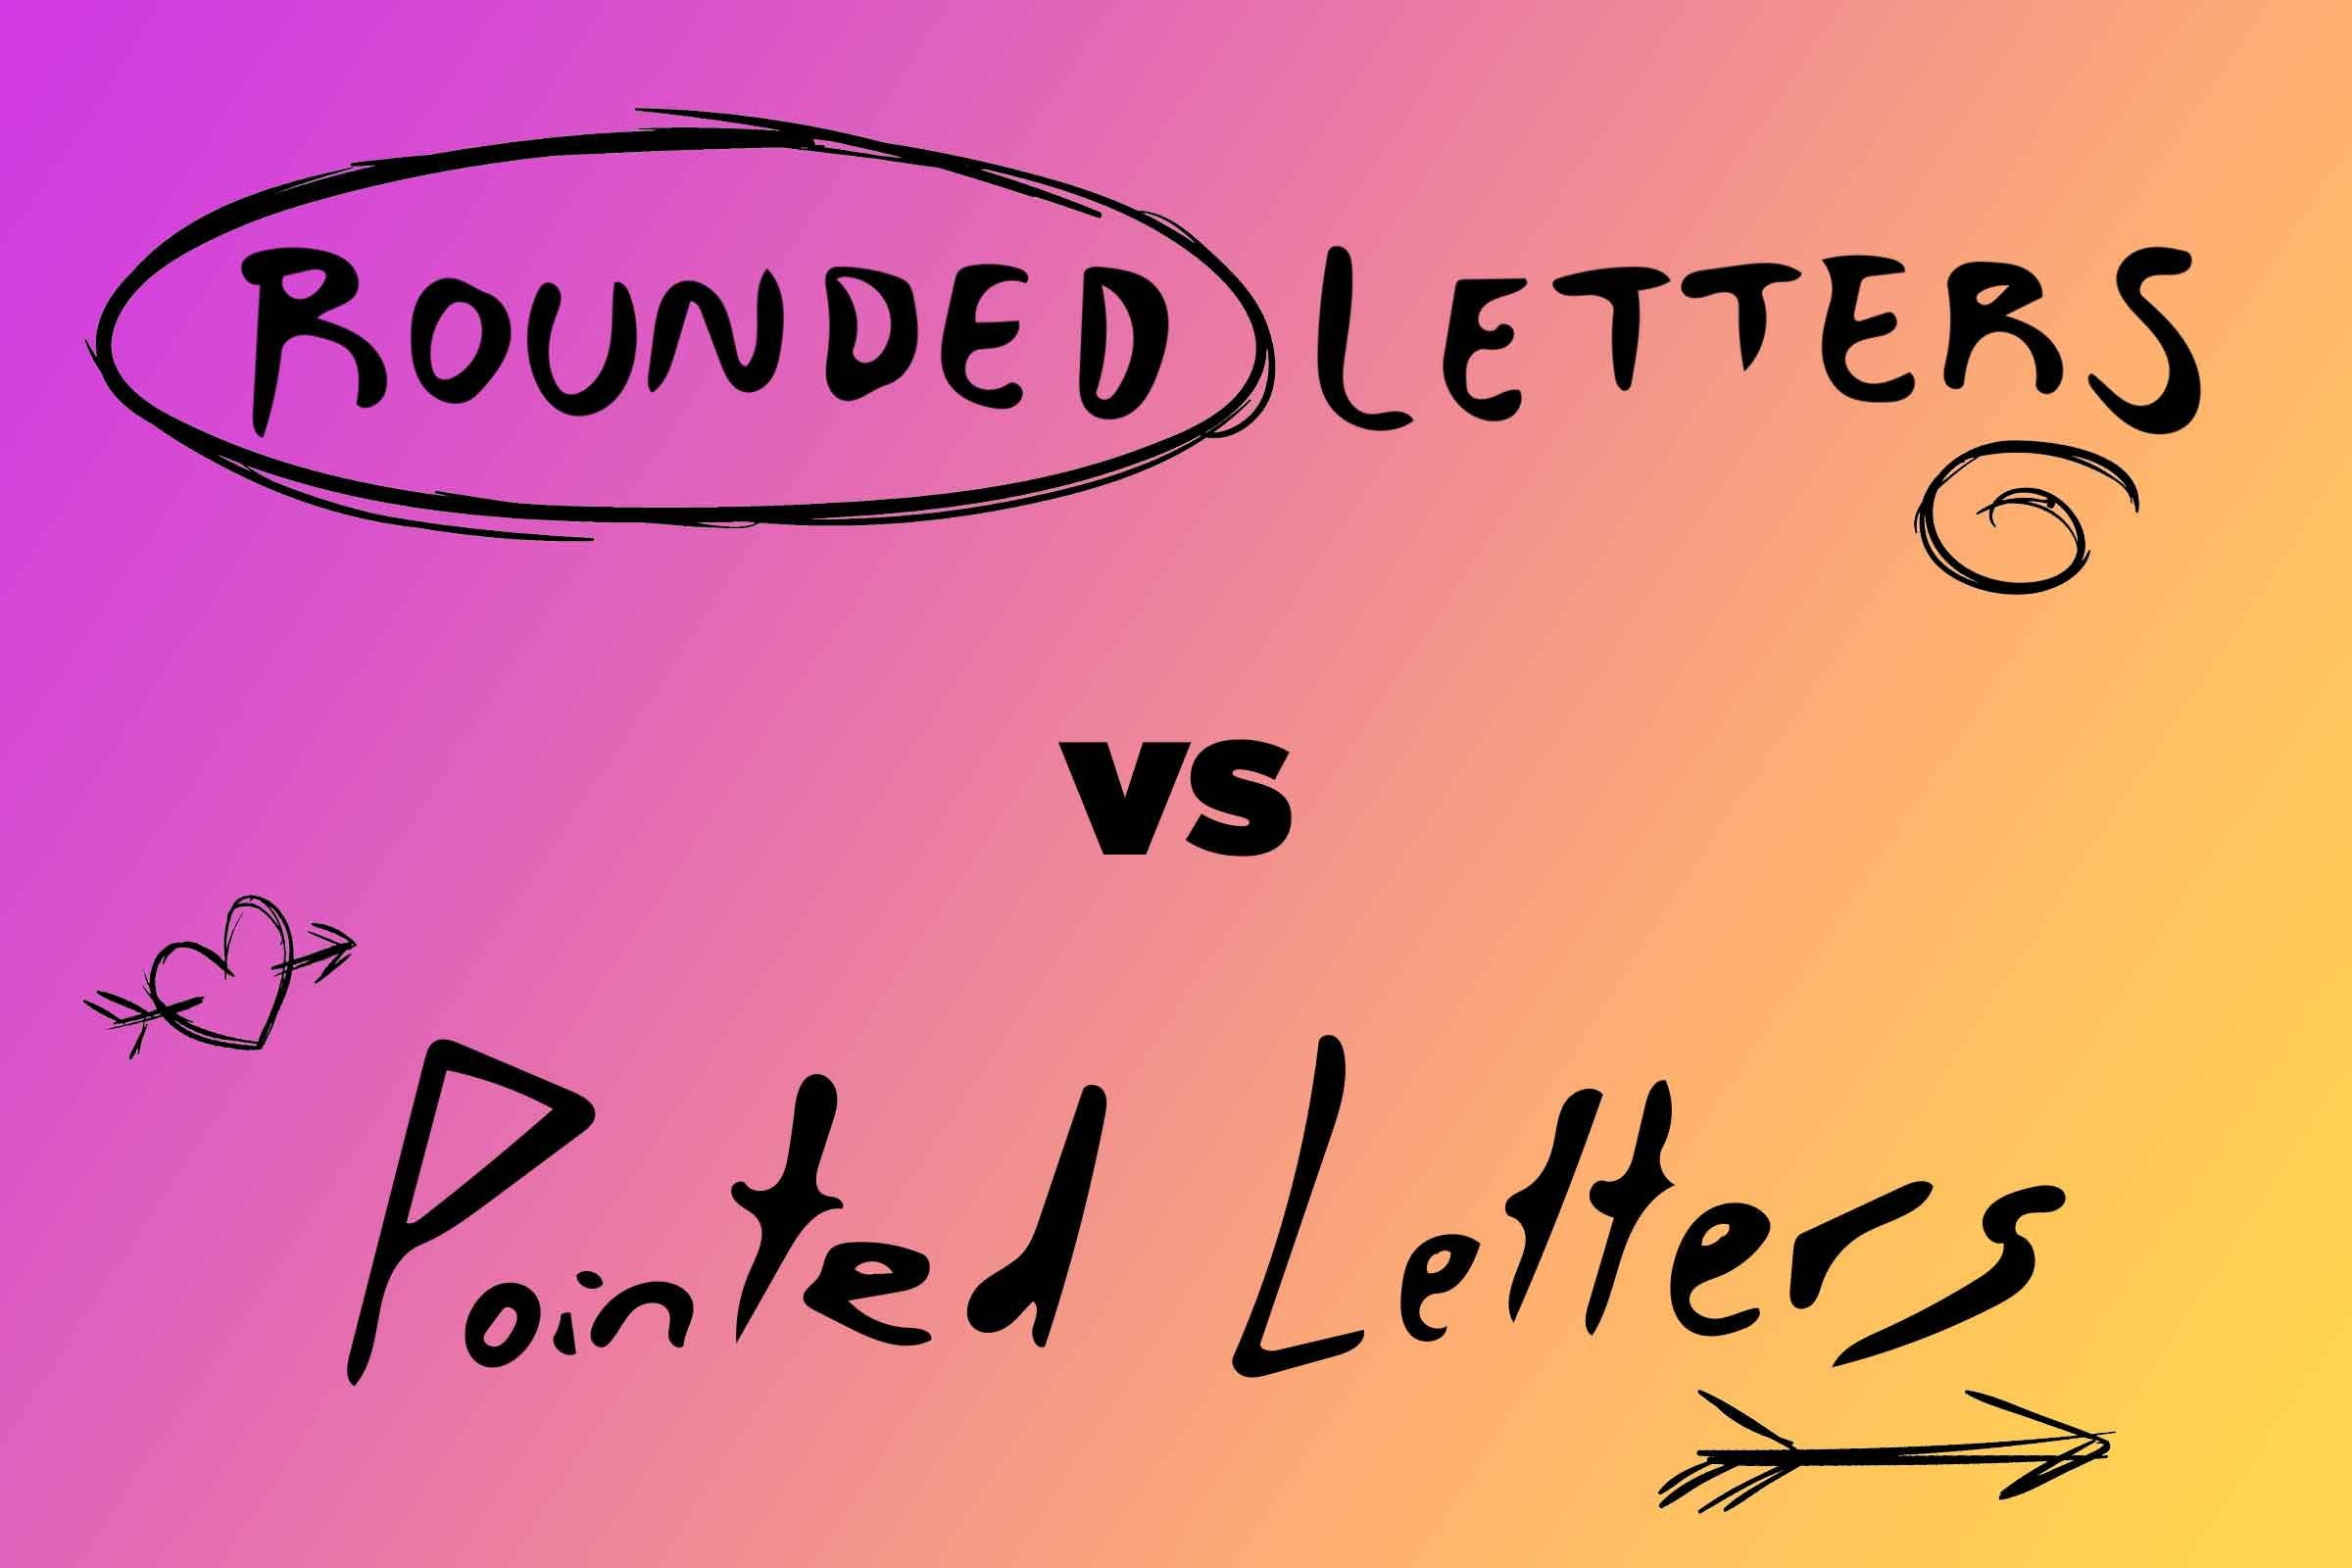 Are Your Letters Pointed Or Rounded